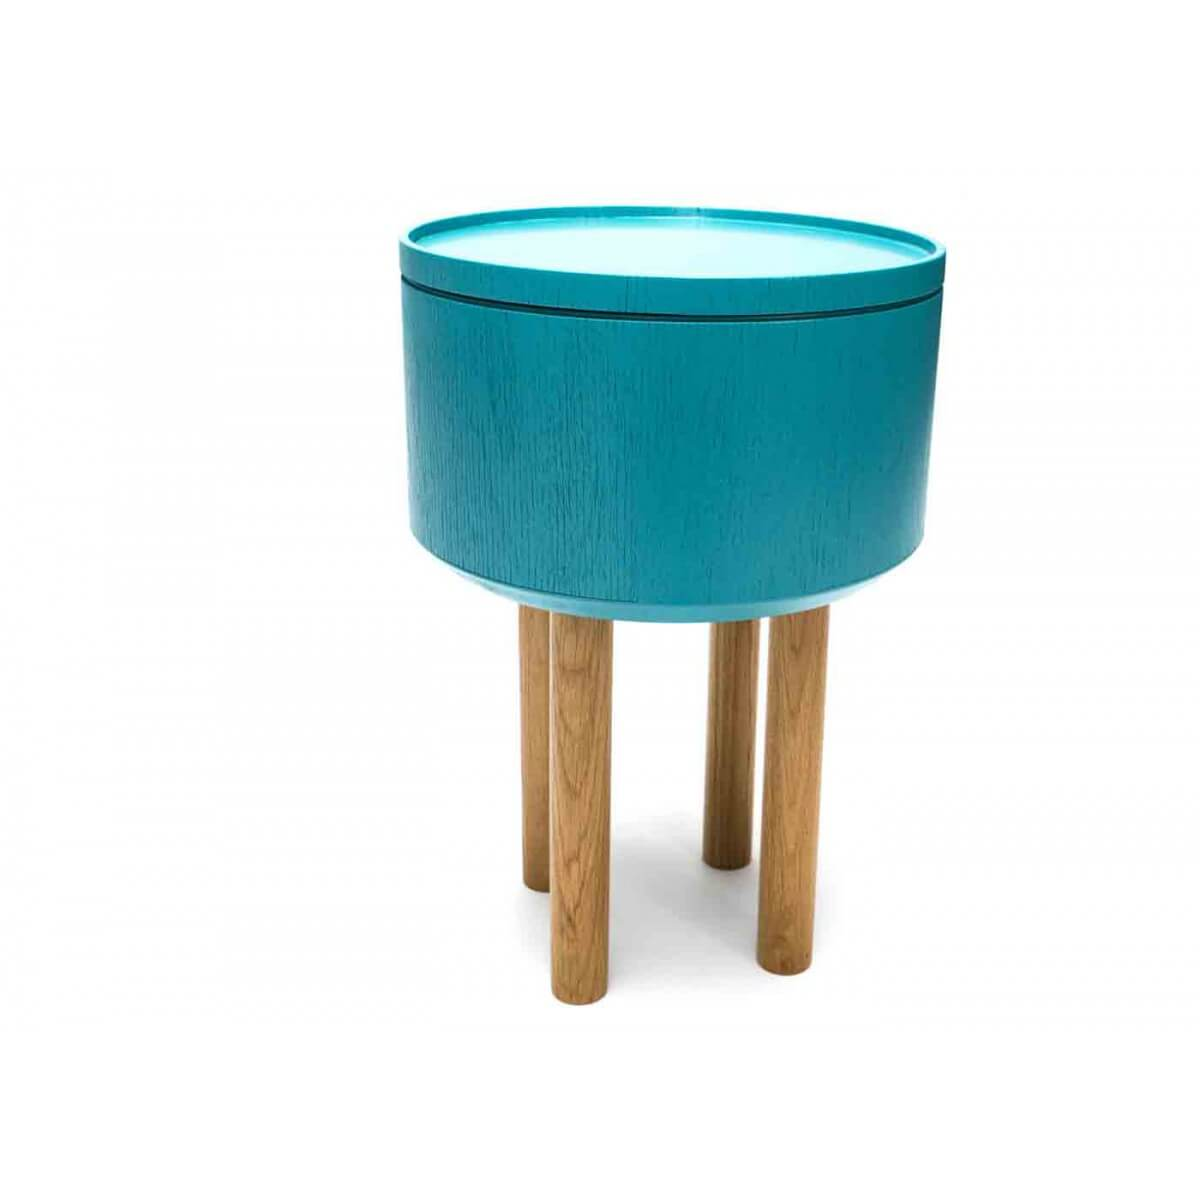 Table basse design scandinave bleu glacier hat 3 par bellila - Table basse d appoint ...